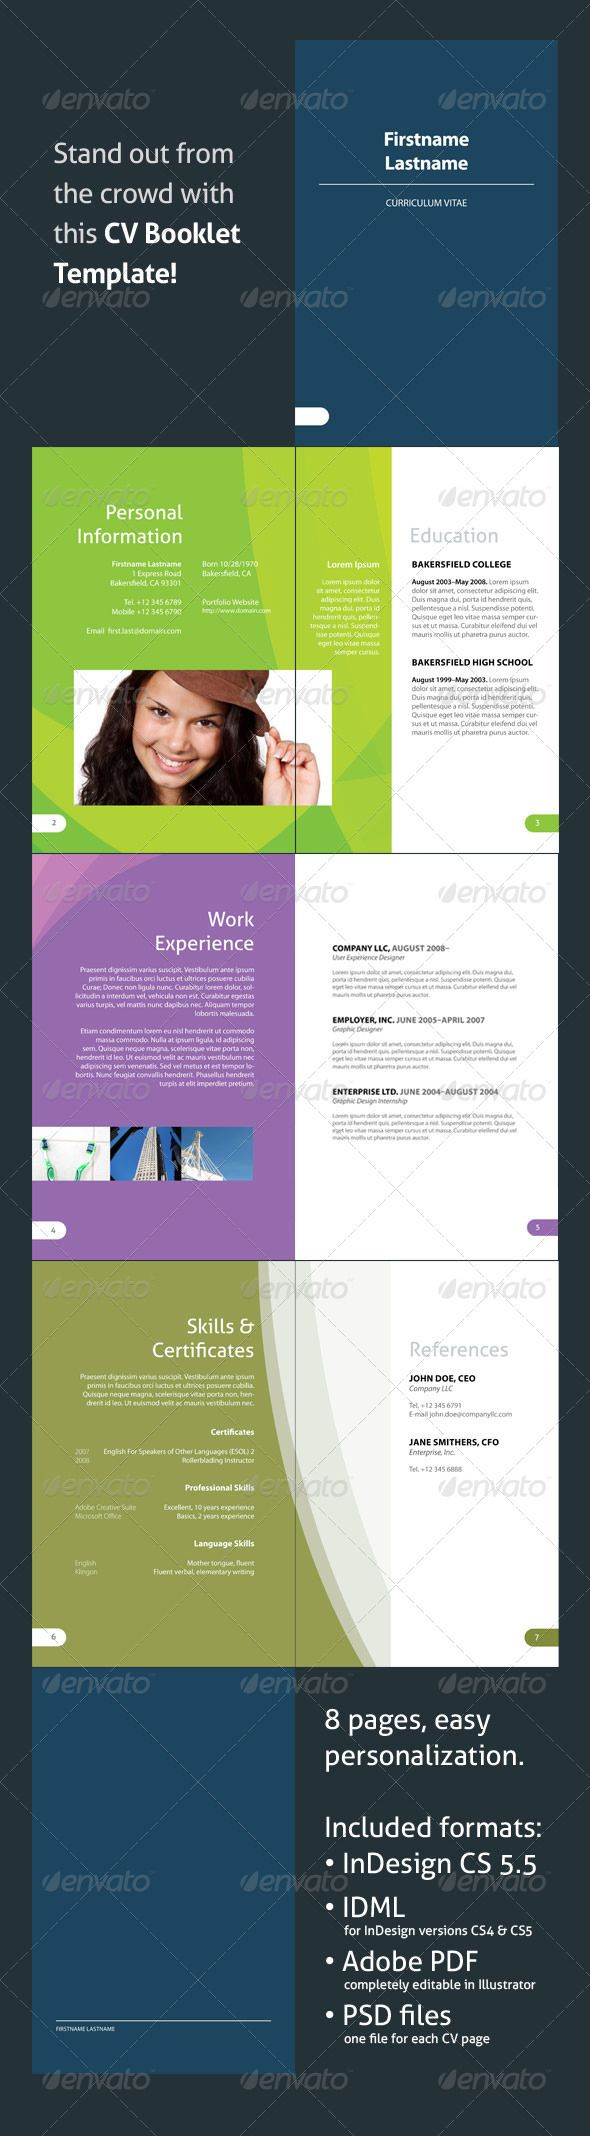 Magnificent Resume Booklet Template Free Illustration   Example .